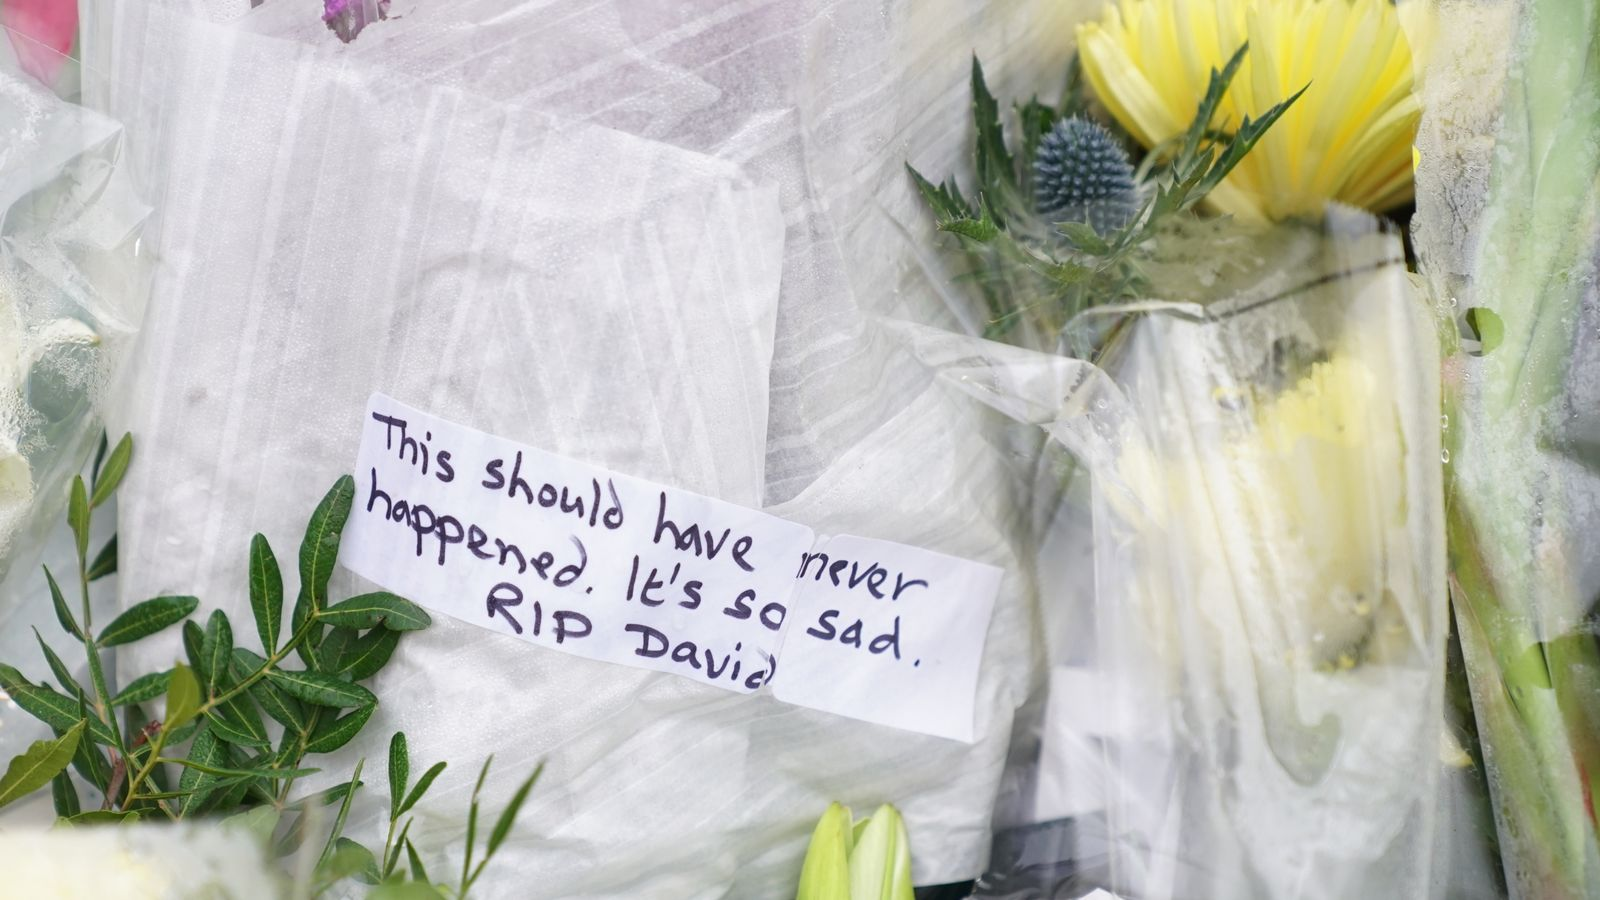 Sir David Amess killing: MPs could get police protection for constituency surgeries in wake of stabbing – Home Secretary says